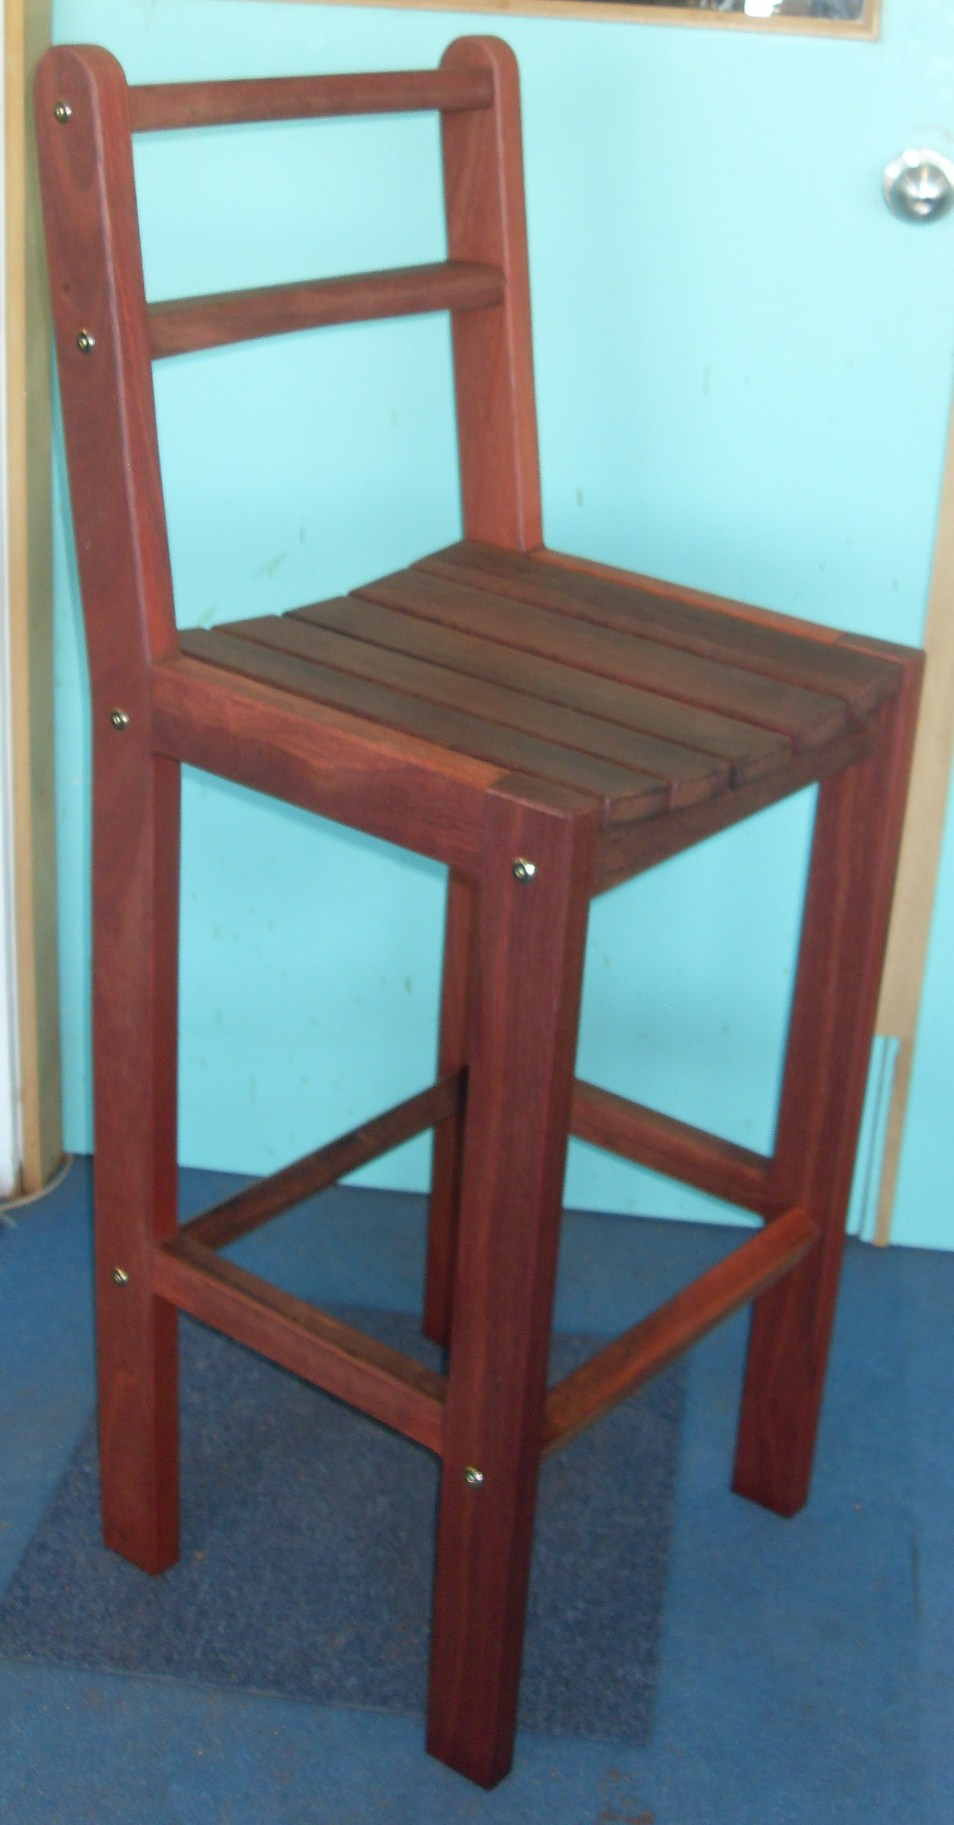 b43 Stool -Outdoor Jarrah NEW Bar stool with back 1.JPG